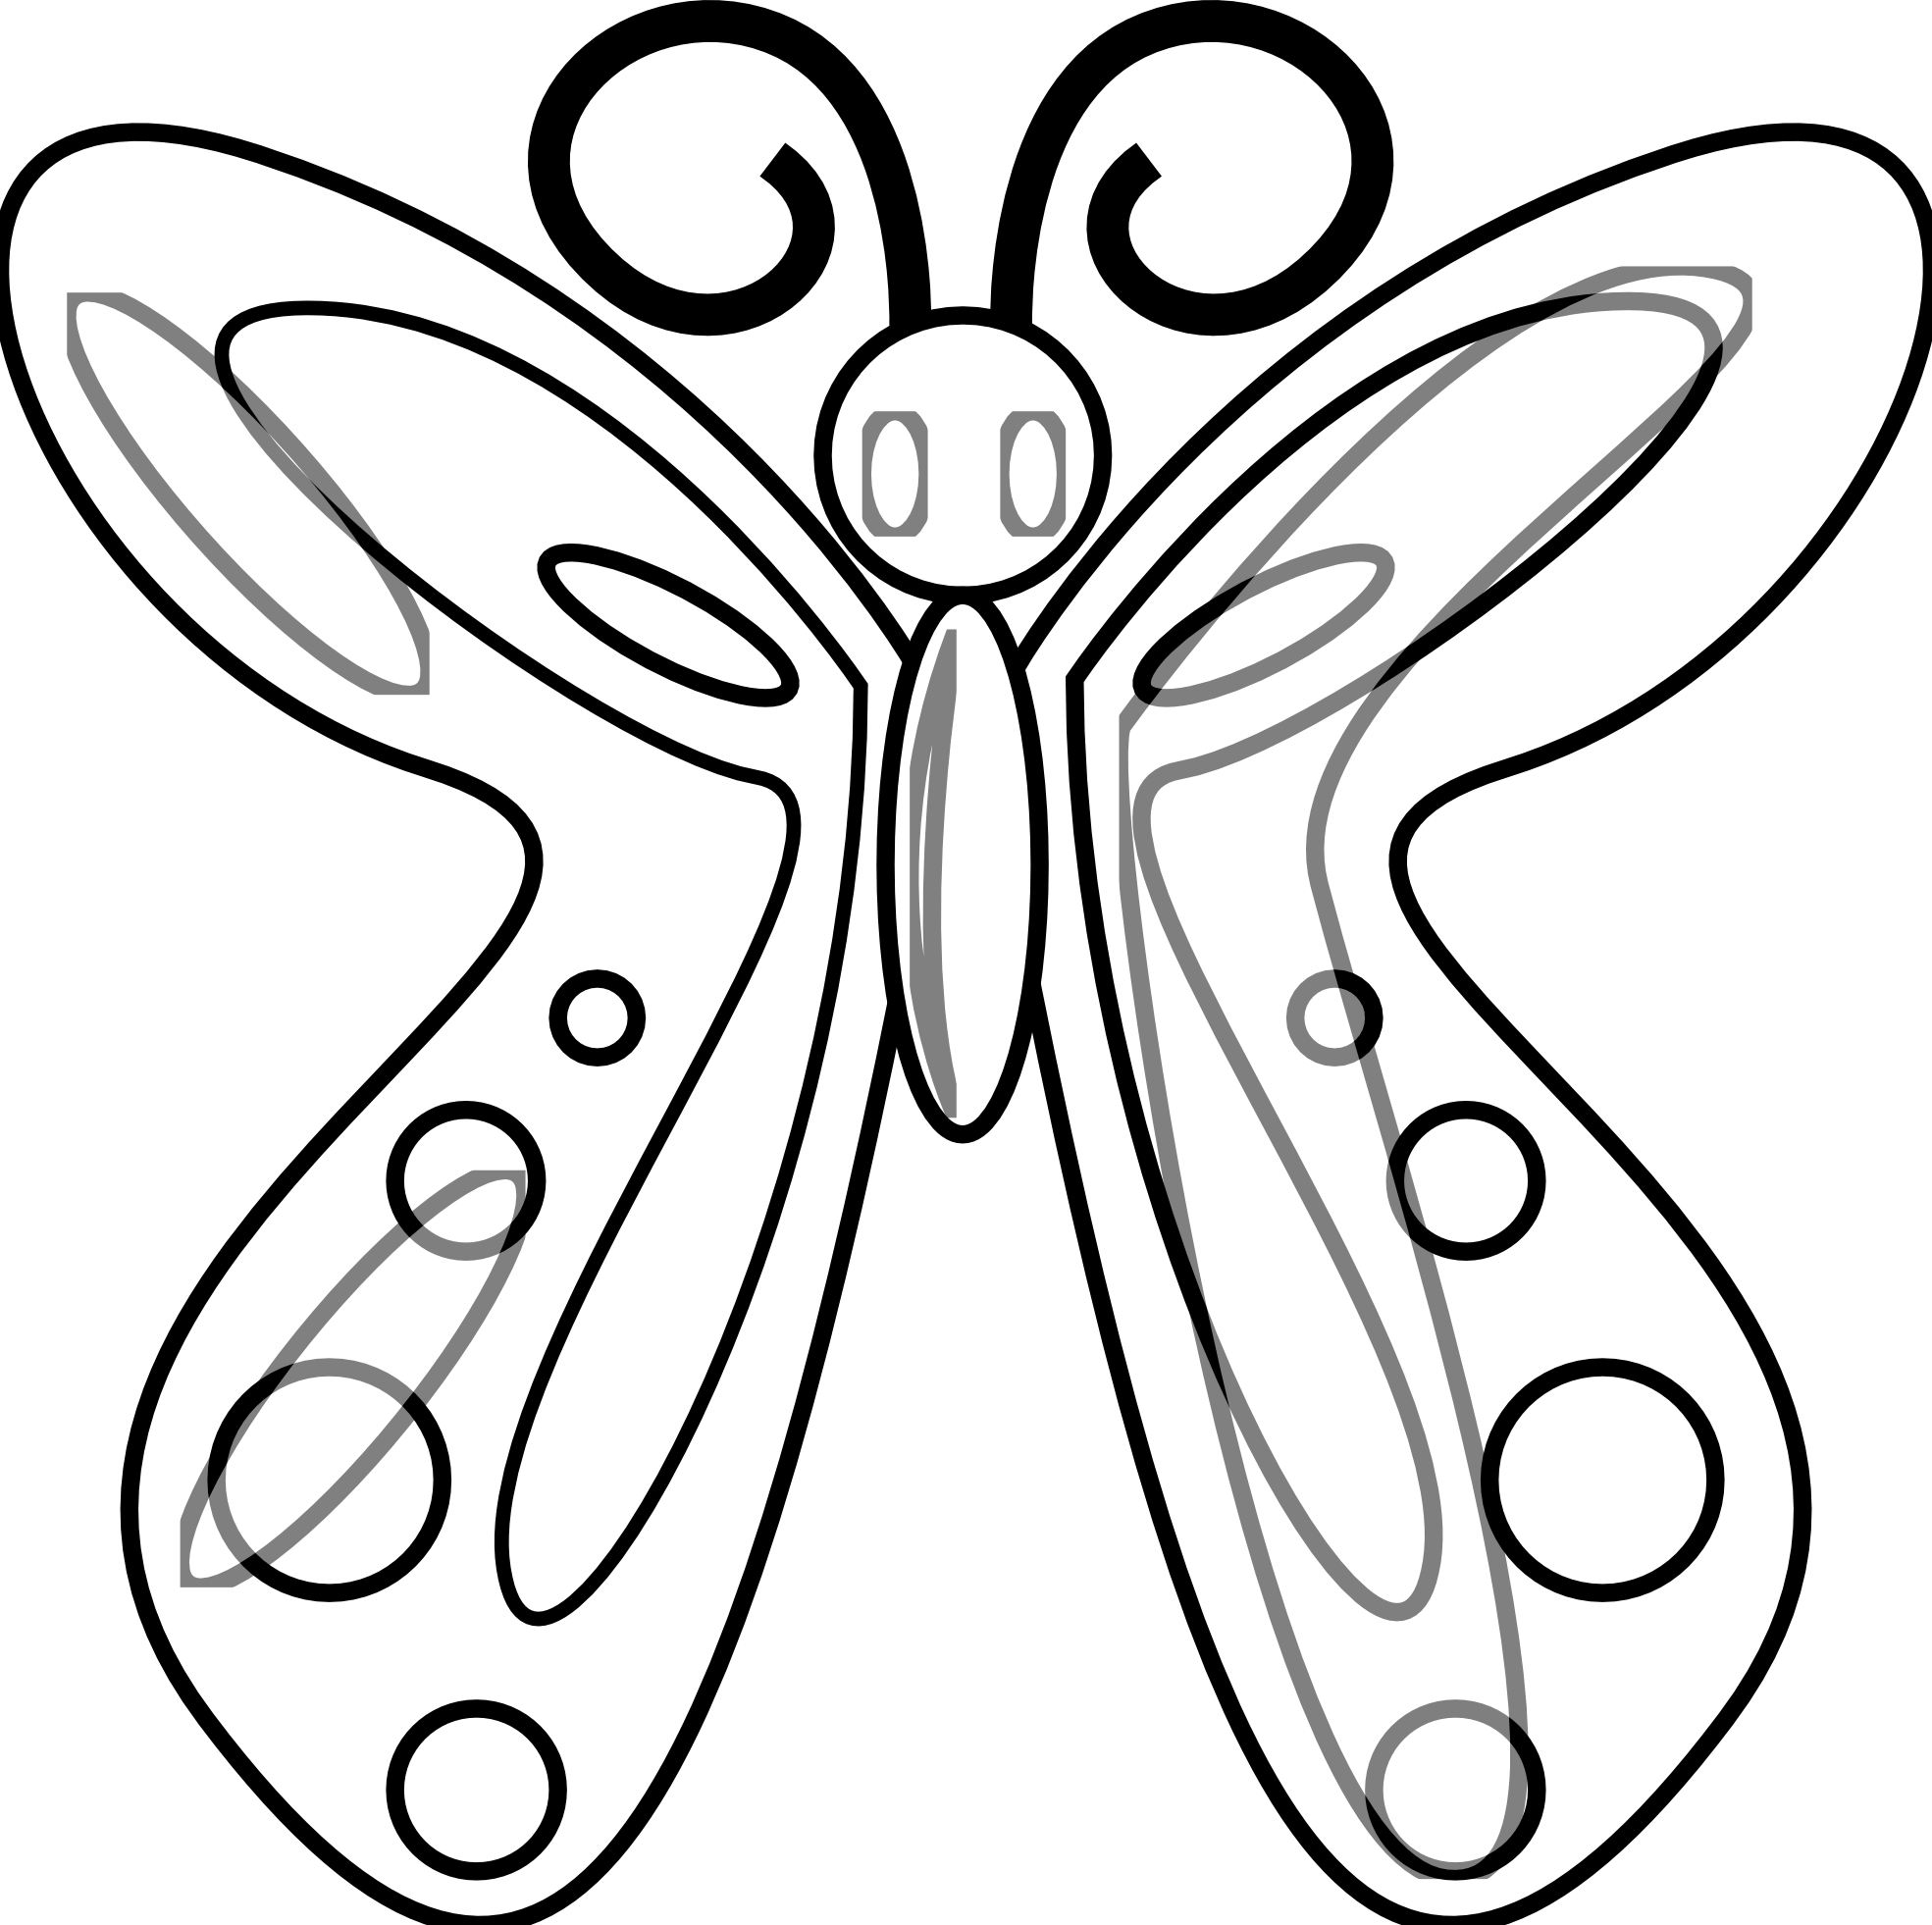 Butterfly Net Clipart - Cliparts.co